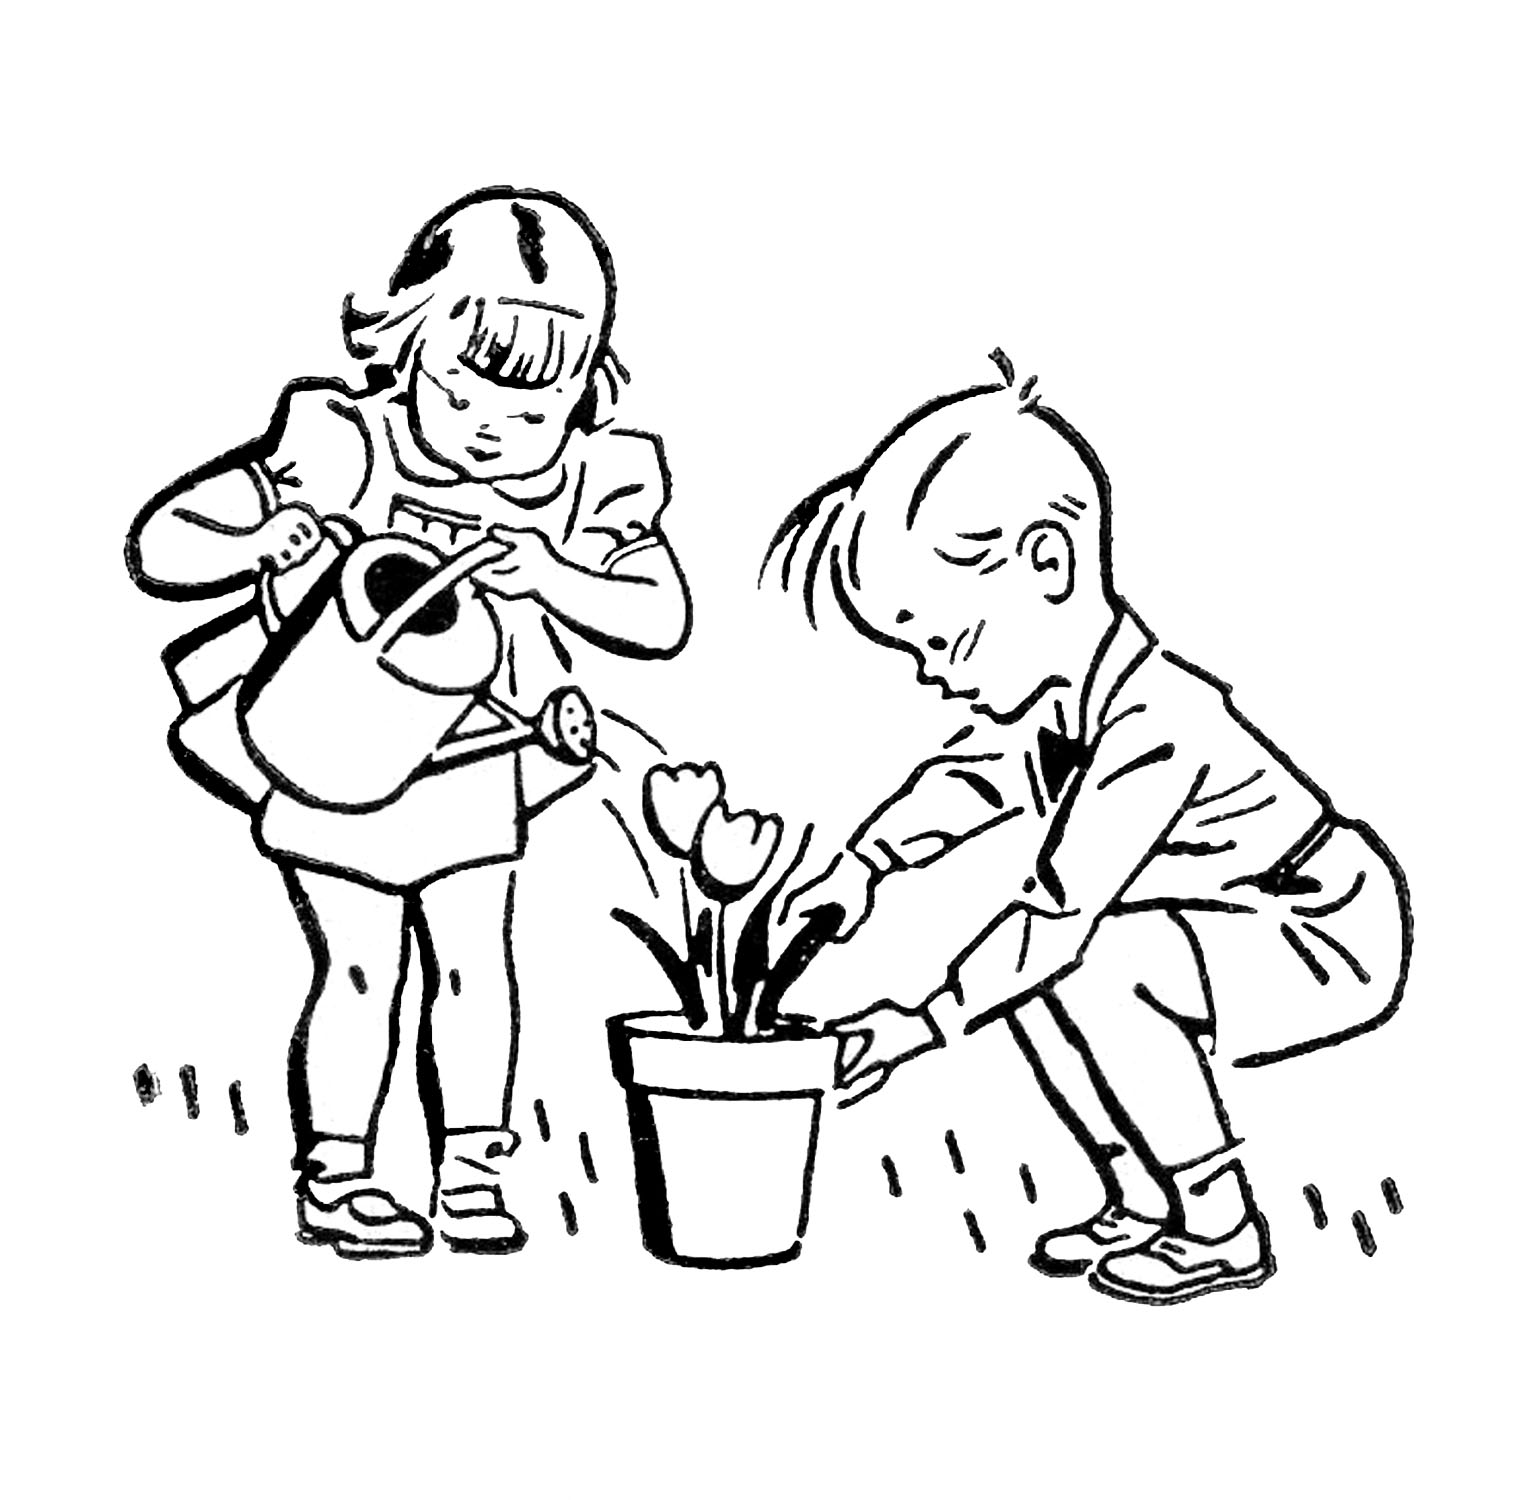 Retro Images   Cute Kids   Gardening   Fishing   Playing   The